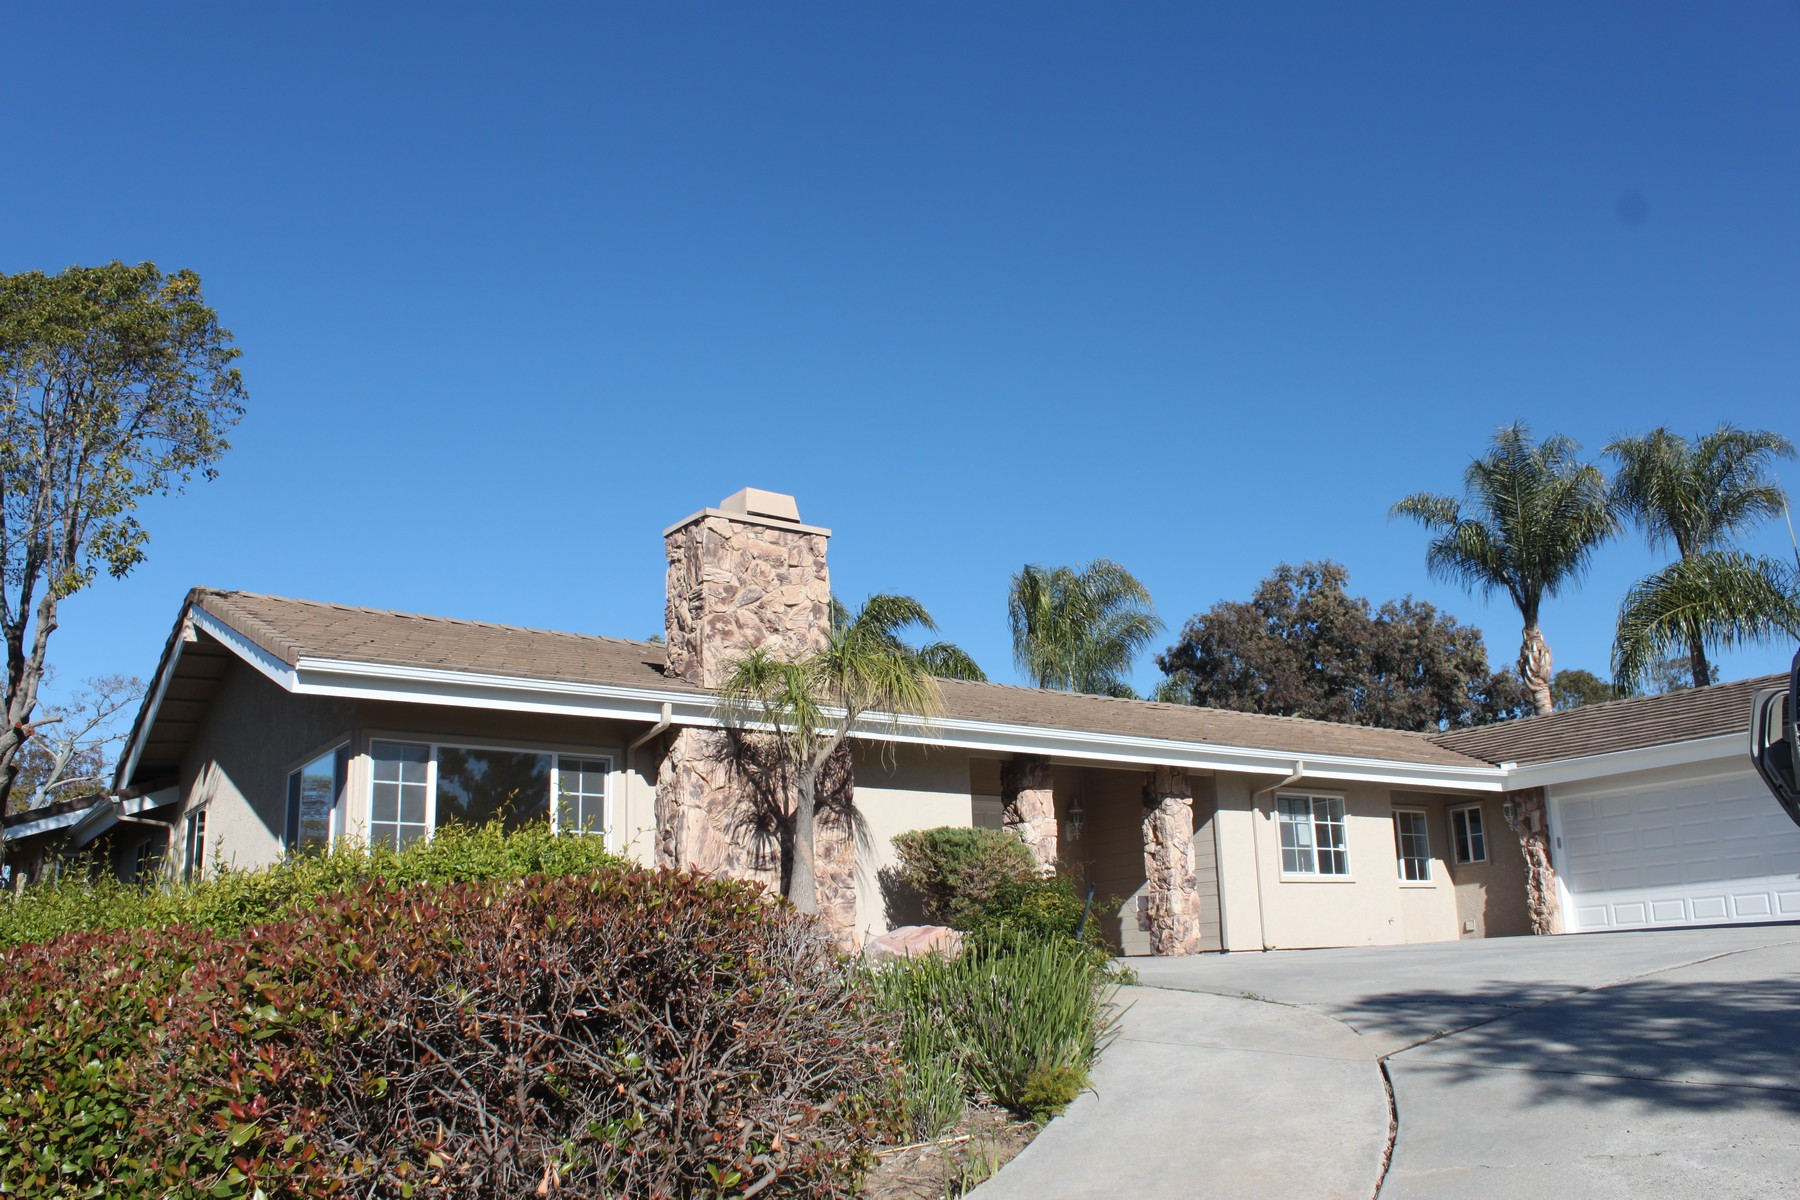 Single Family Home for Active at 10385 Eagle Lake 10385 Eagle Lake Drive Escondido, California 92029 United States